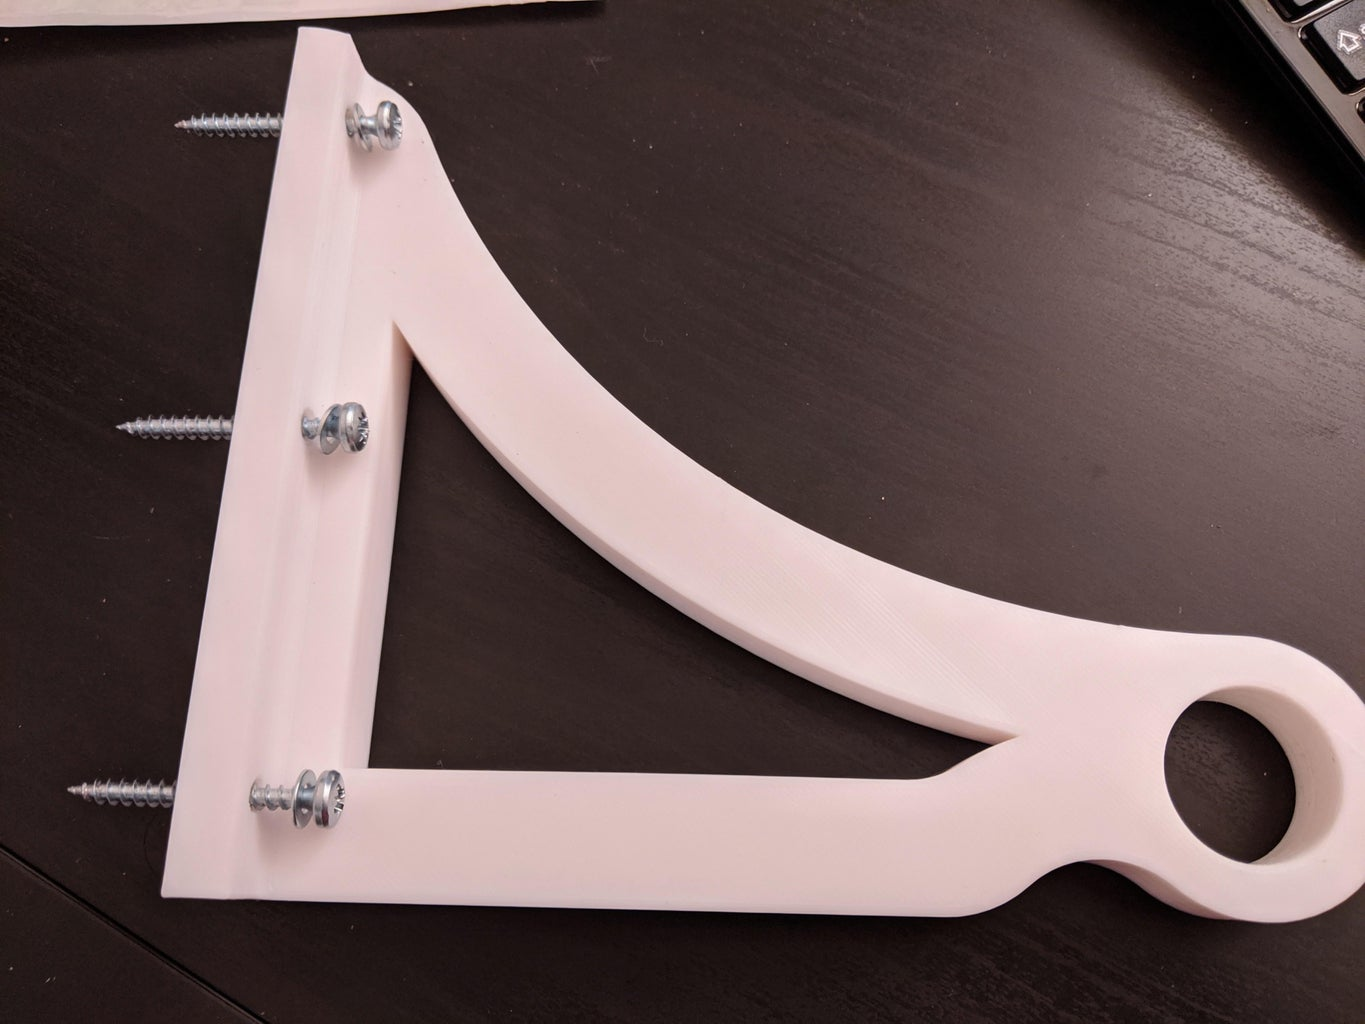 Mount Brackets to Wall